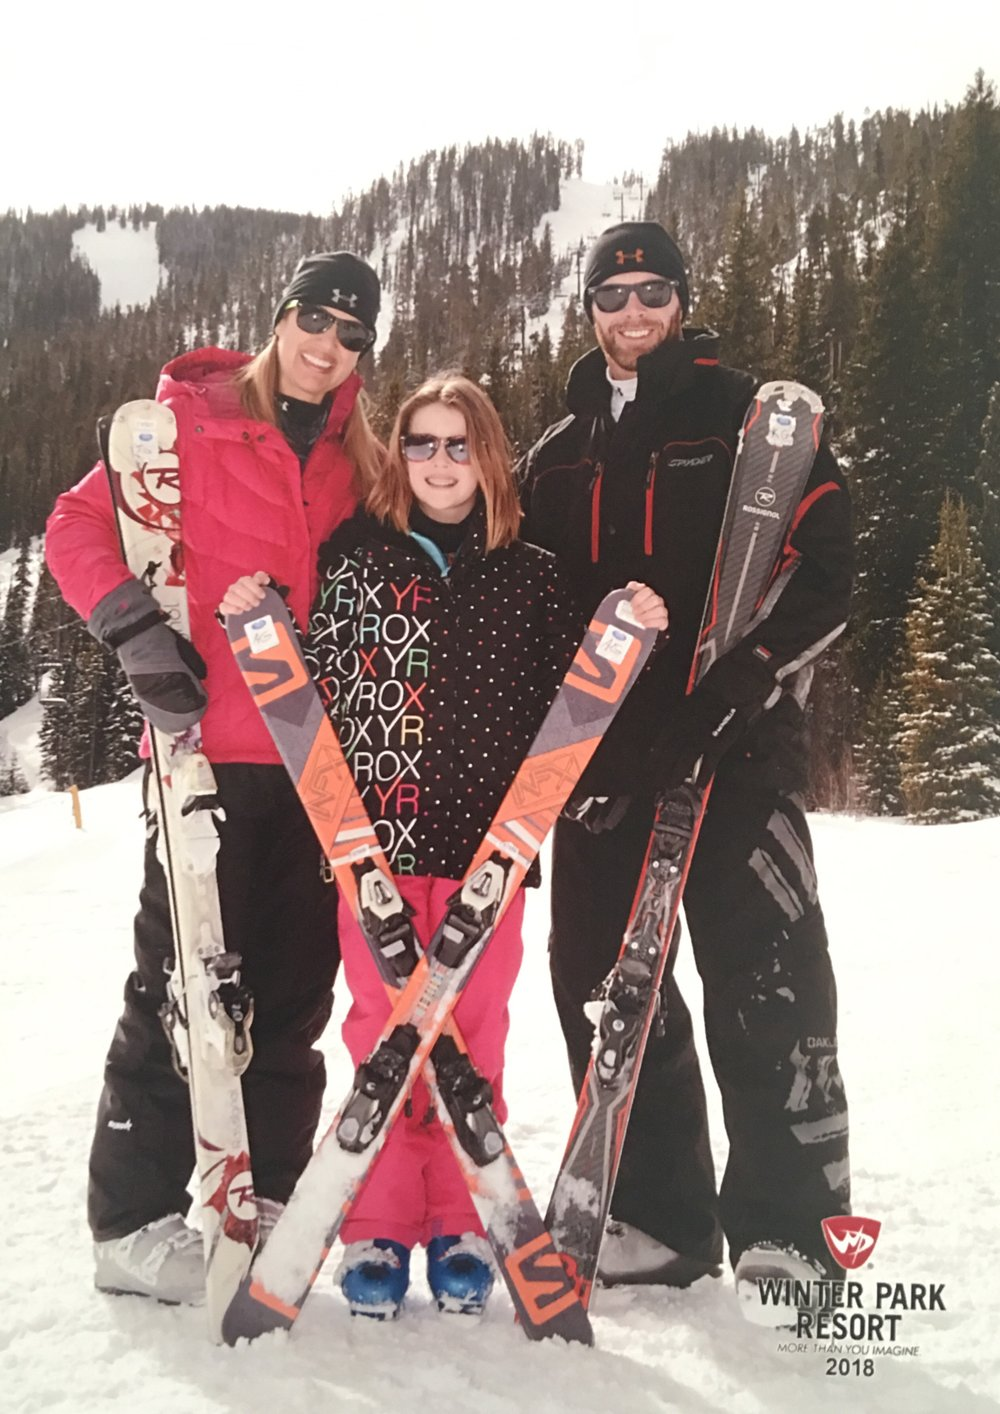 Adelyn was able to enjoy skiing with her family in Feb 2018 - no broken bones!